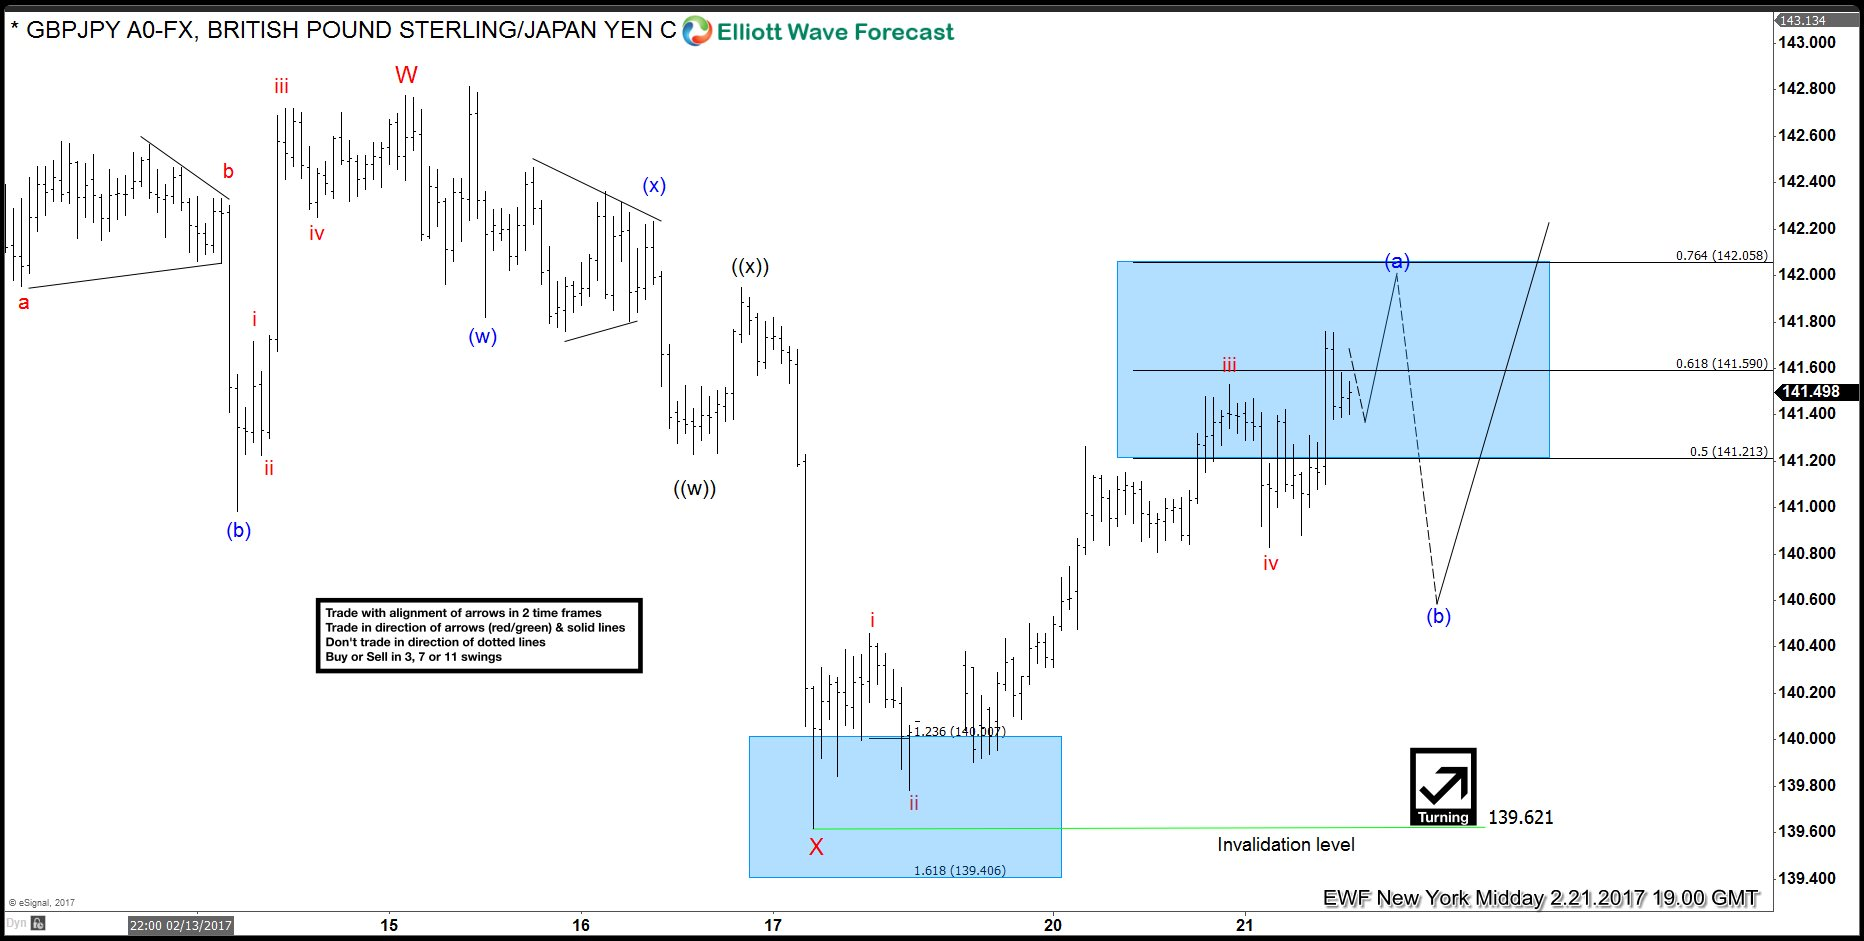 GBPJPY Shows 5 wave impulse up from 2/17 Lows